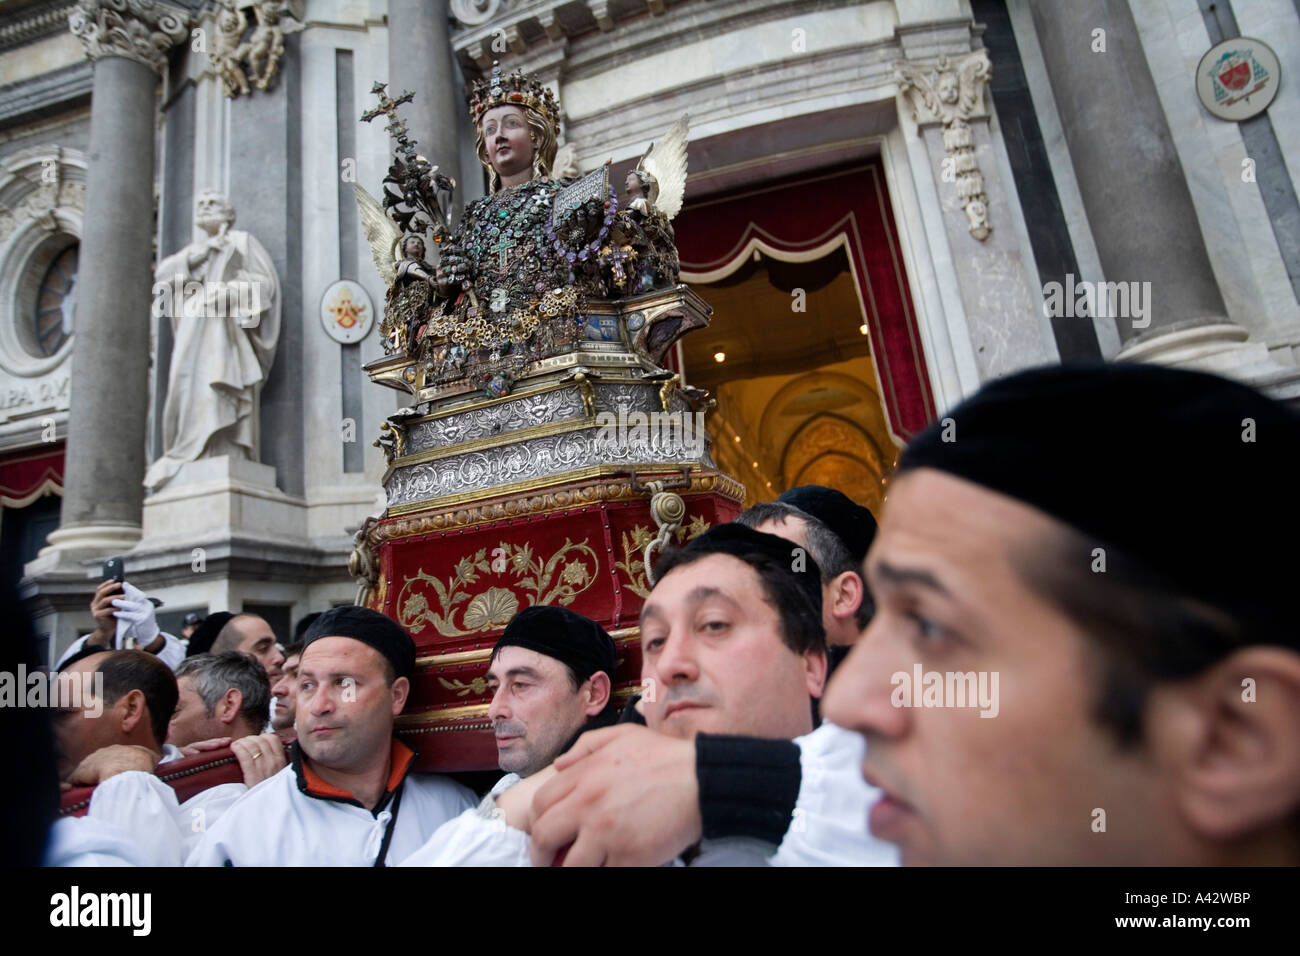 Celebration for S Agata Saint protector of Catania Sicily Italy - Stock Image